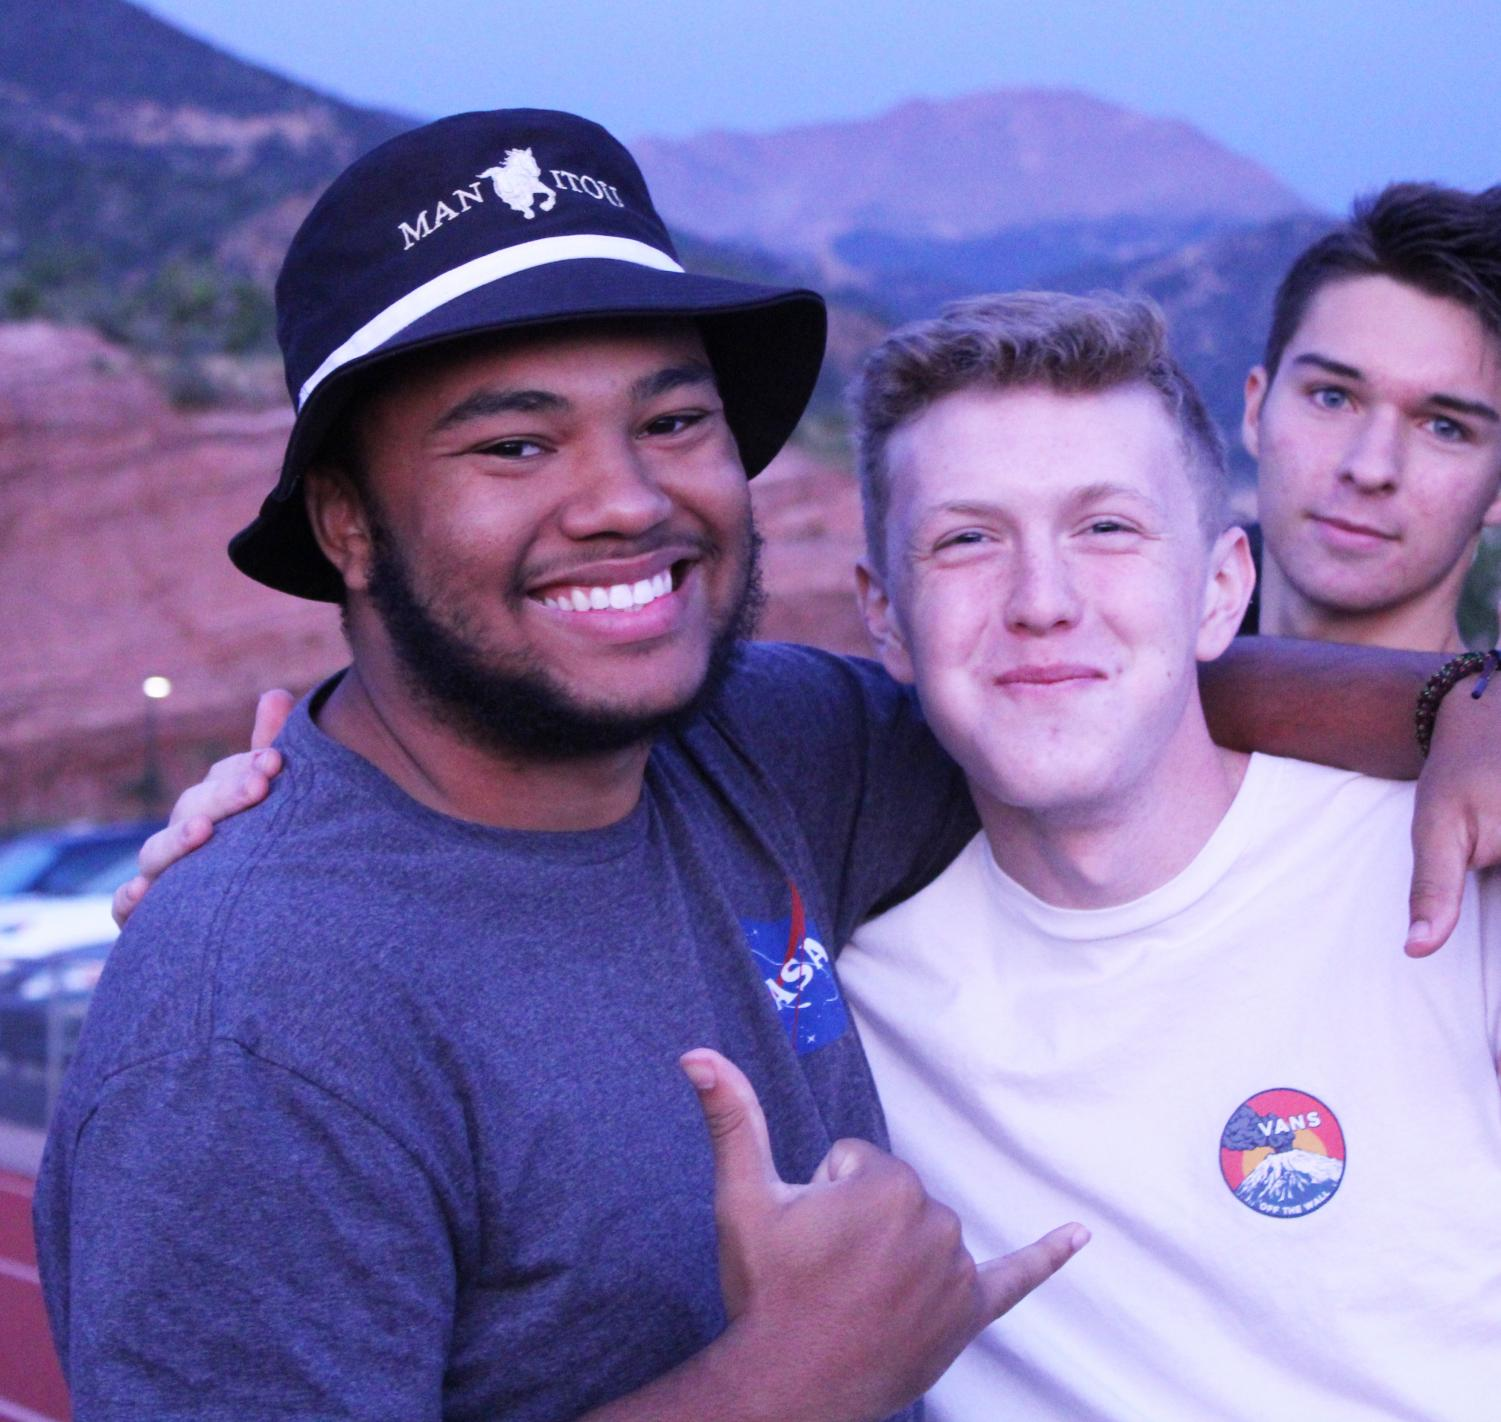 Dominick+Pearson+%2812%29+poses+for+a+photo+with+his+friend+Zak+Talbot+%2812%29+as+S%C3%A9amus+Lowe+%2812%29+photobombs+at+Senior+Sunrise.+Pearson+is+thrilled+for+his+senior+year.